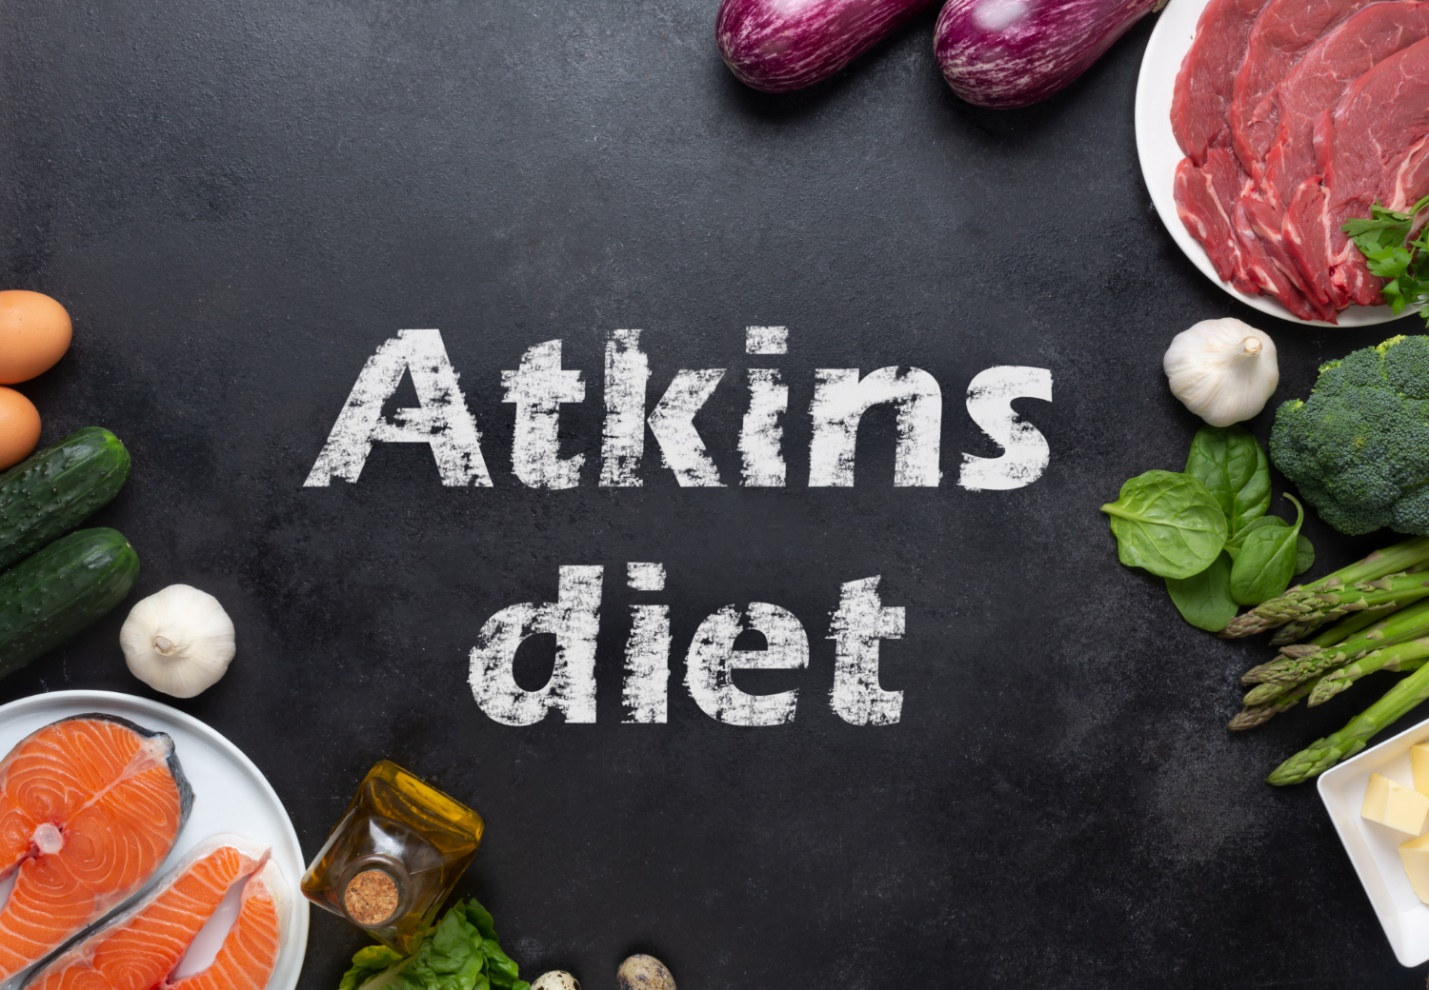 C:\Users\Dell\Downloads\atkins-diet-food-ingredients-balck-chalkboard-health-concept-top-view-with-copy-space-concept-with-text (1).jpg